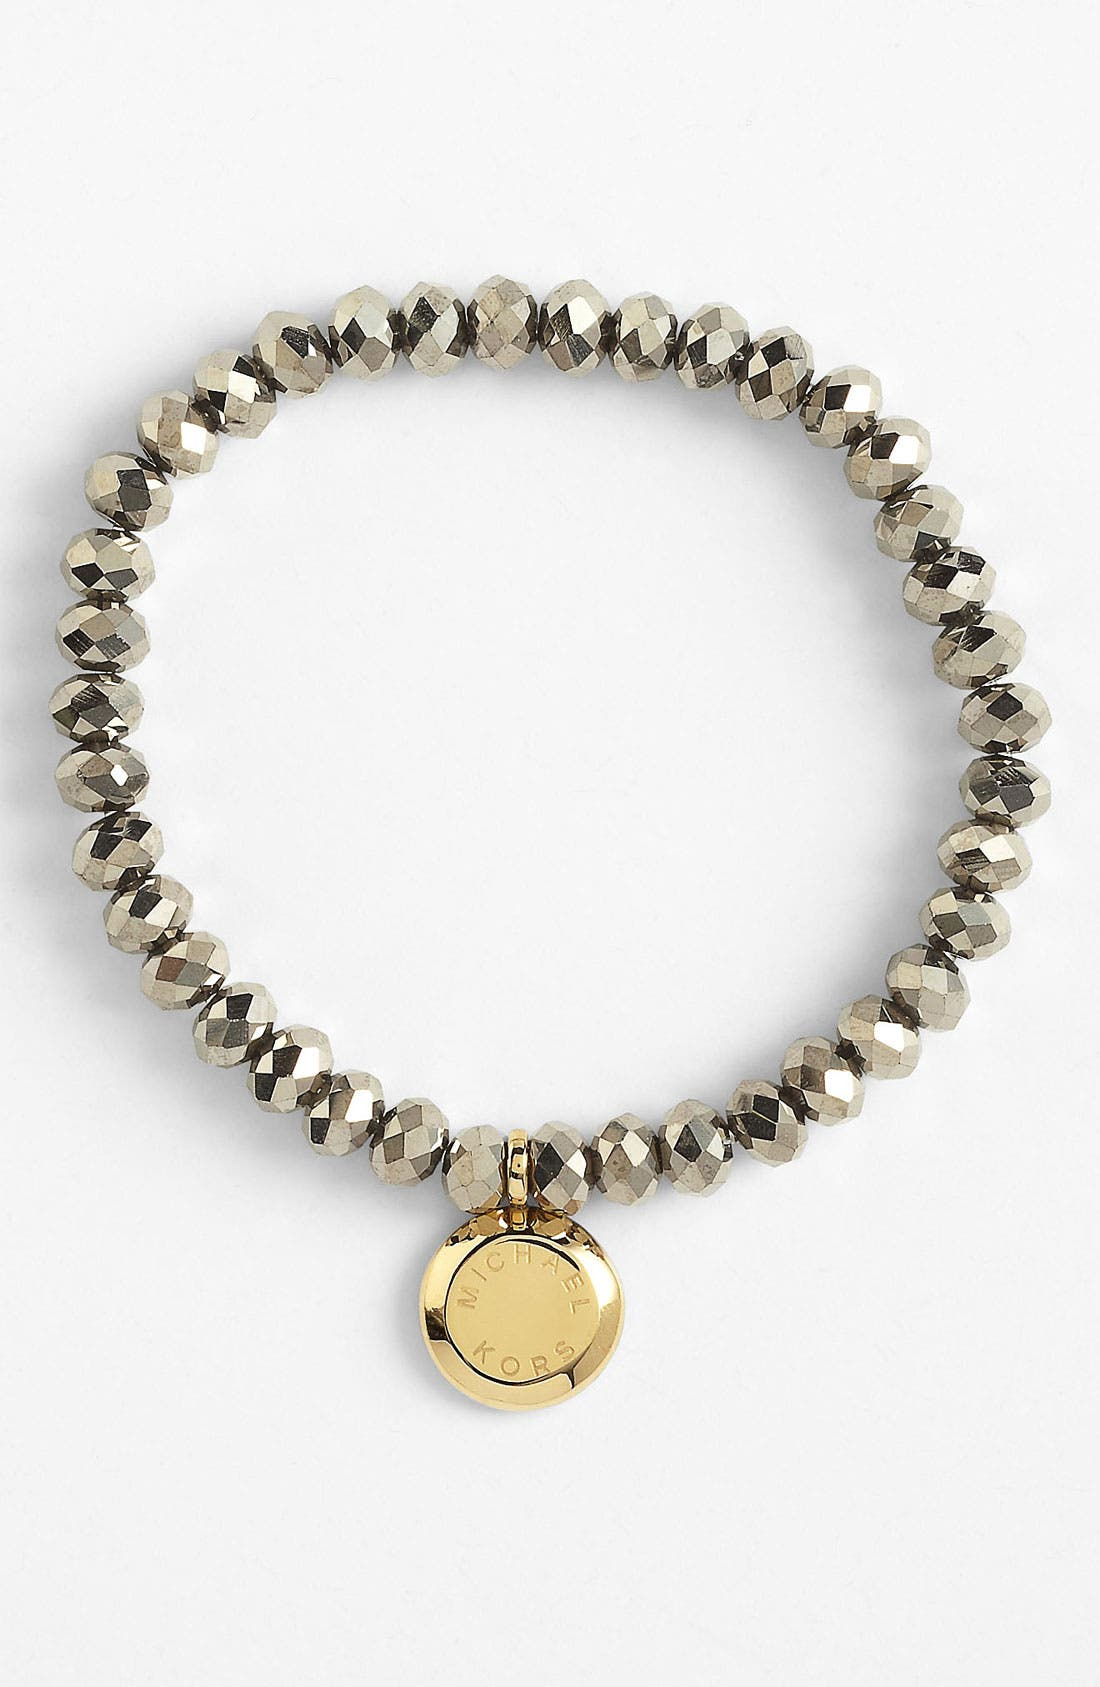 Alternate Image 1 Selected - Michael Kors 'Brilliance' Charm Bead Stretch Bracelet